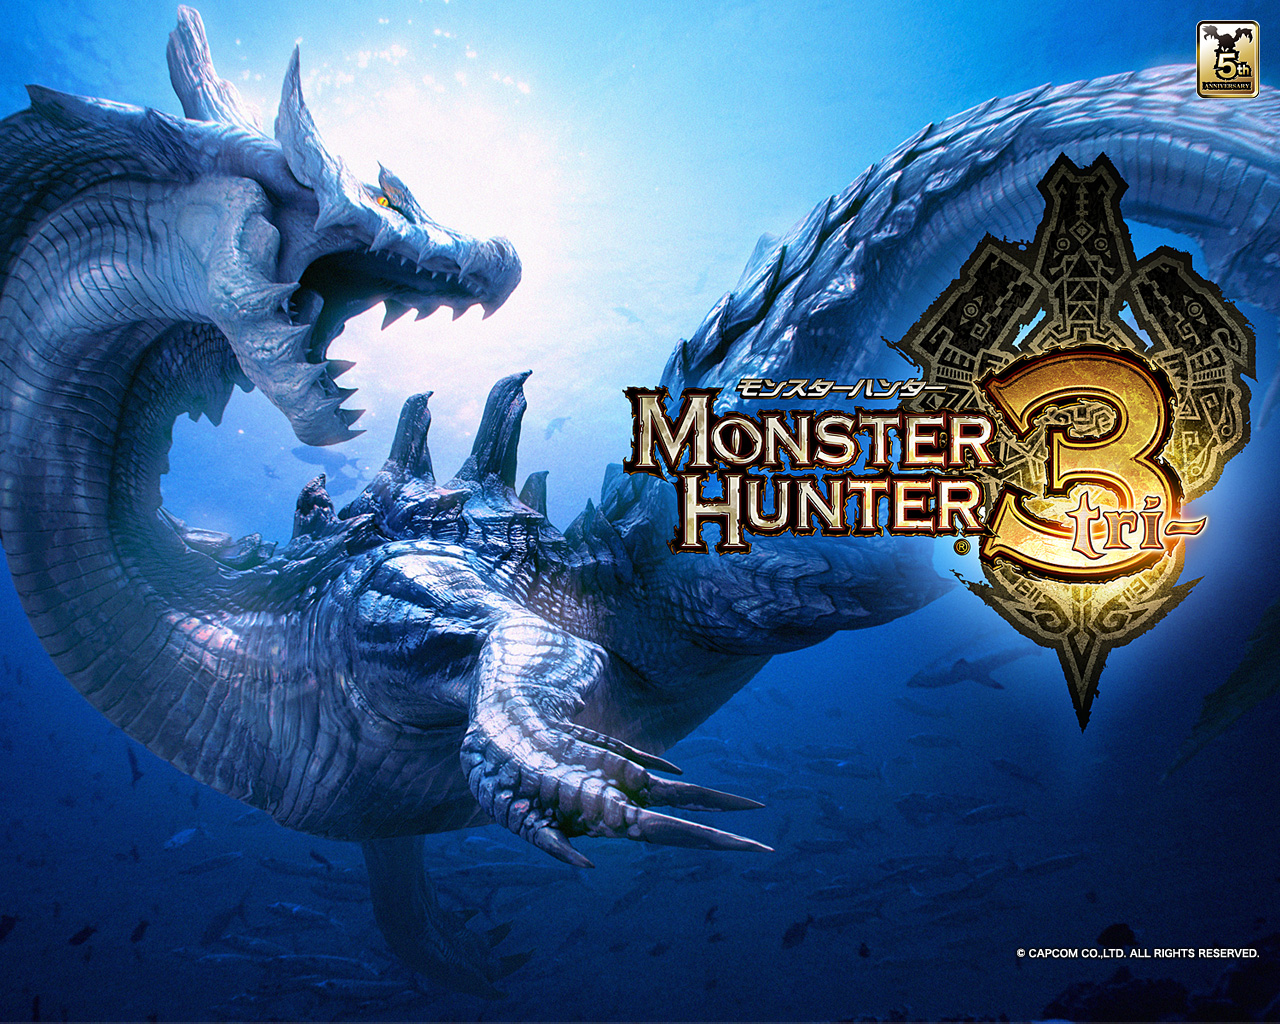 Wallpapers juegos Monster-hunter-tri-wallpaper